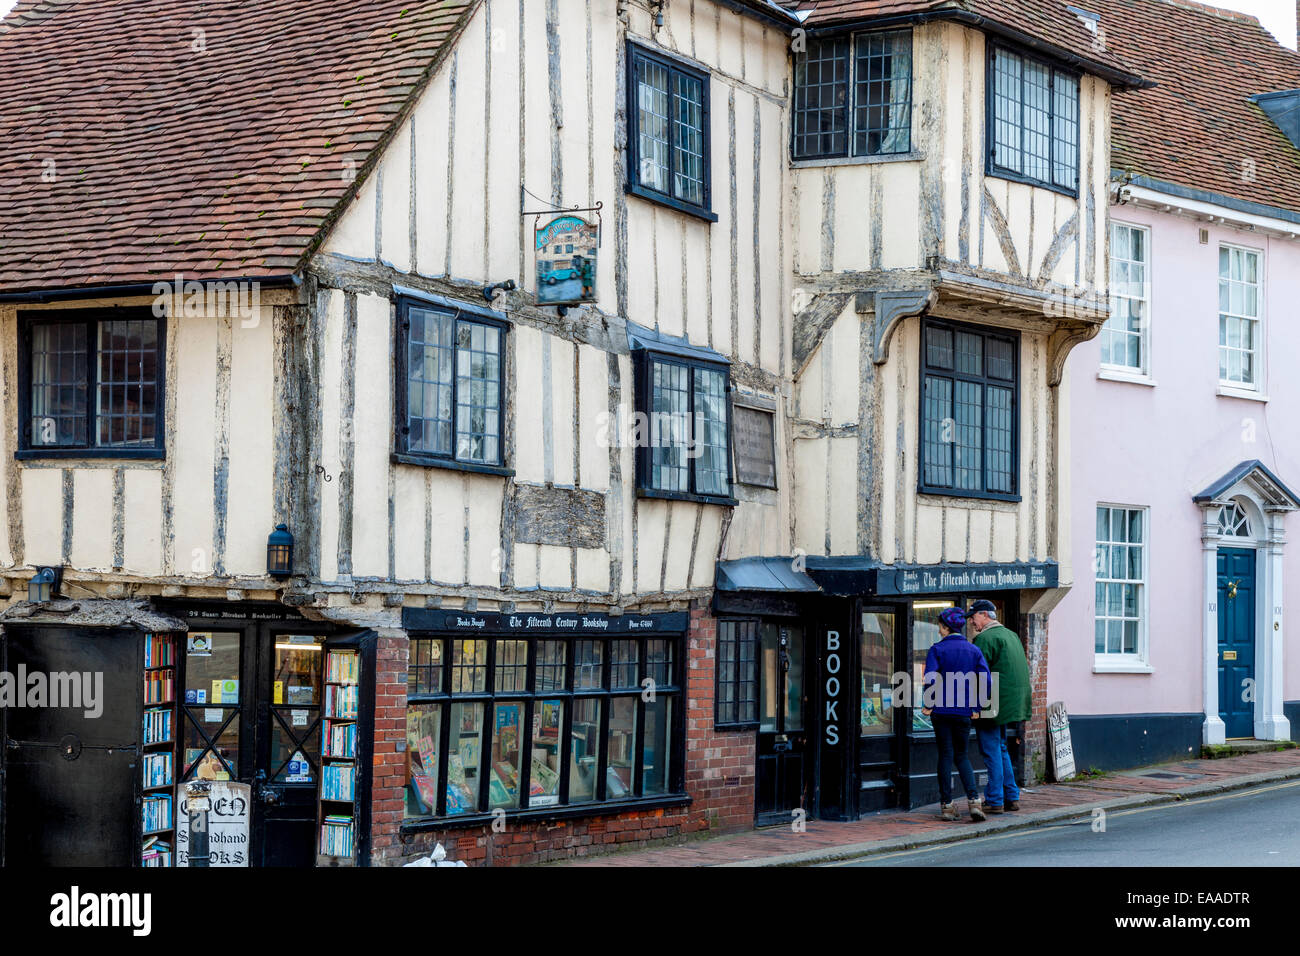 The Fifteenth Century Bookshop, High Street, Lewes, Sussex, England - Stock Image